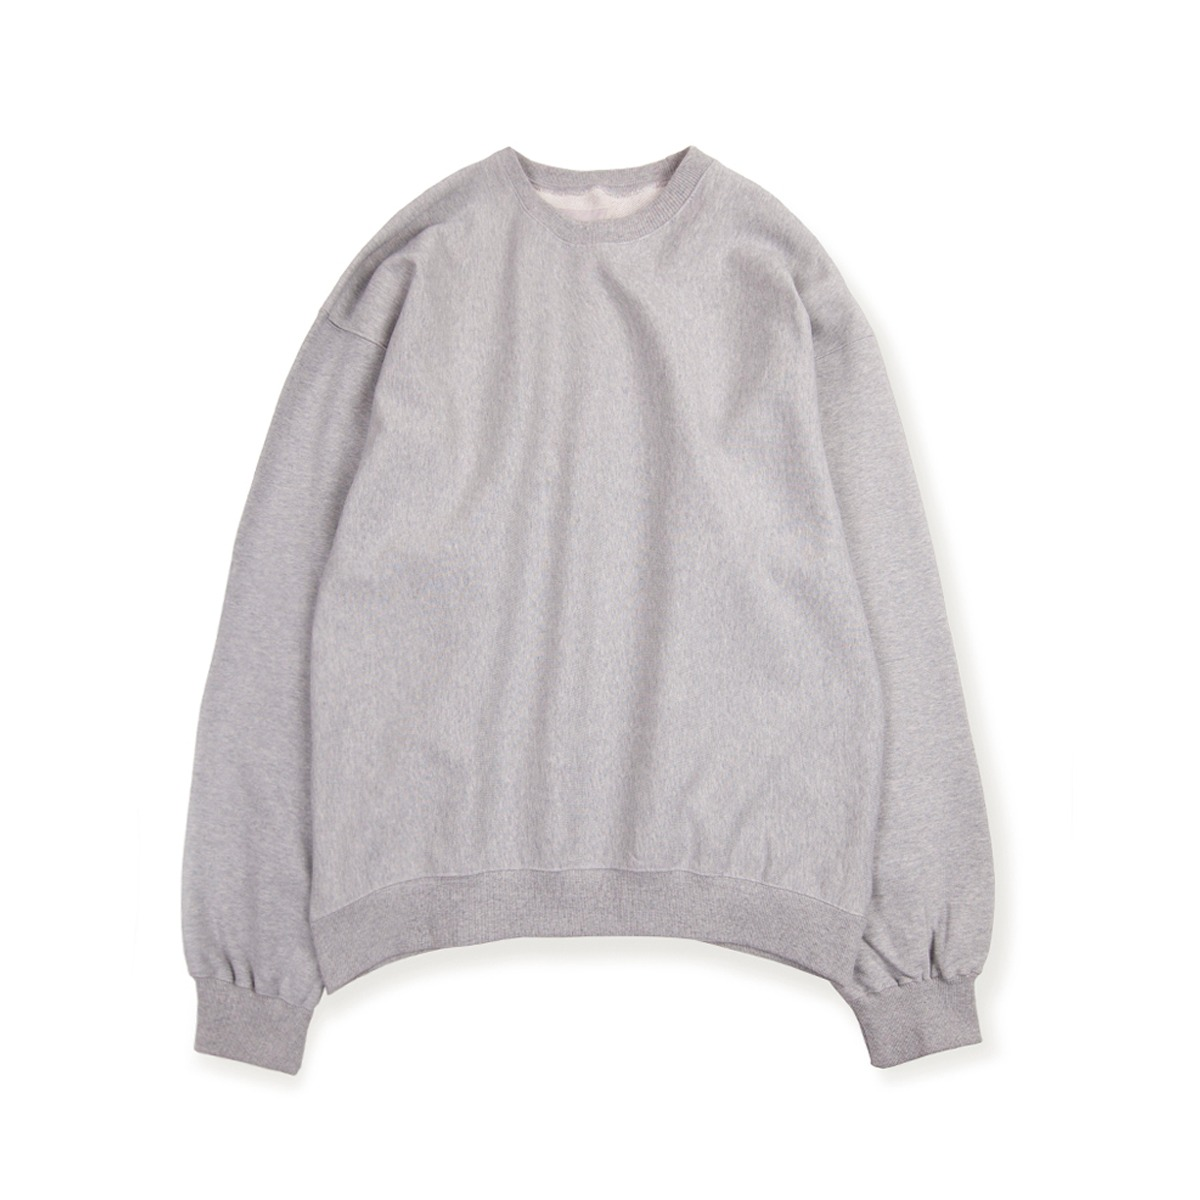 [BROWNYARD] SWEAT SHIRT 'GREY'